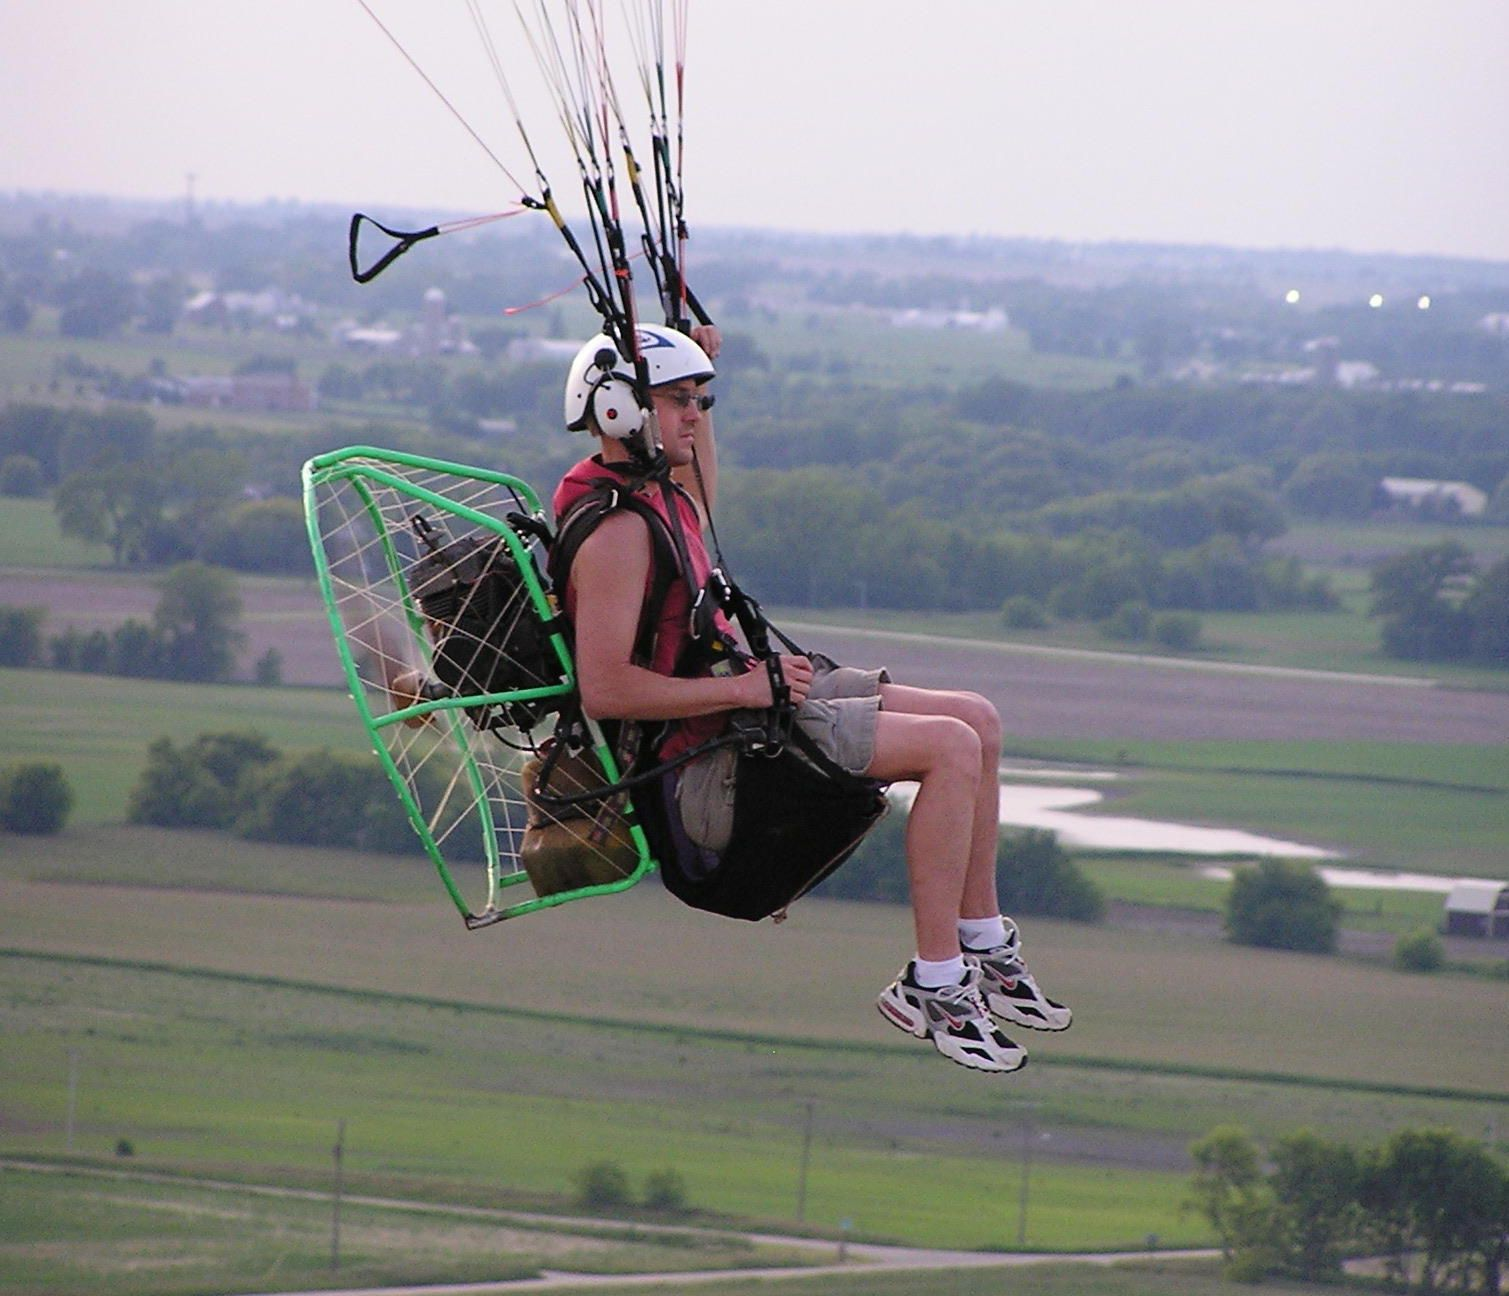 Powered Paragliding | MY INTERESTS & HOBBIES | Powered parachute